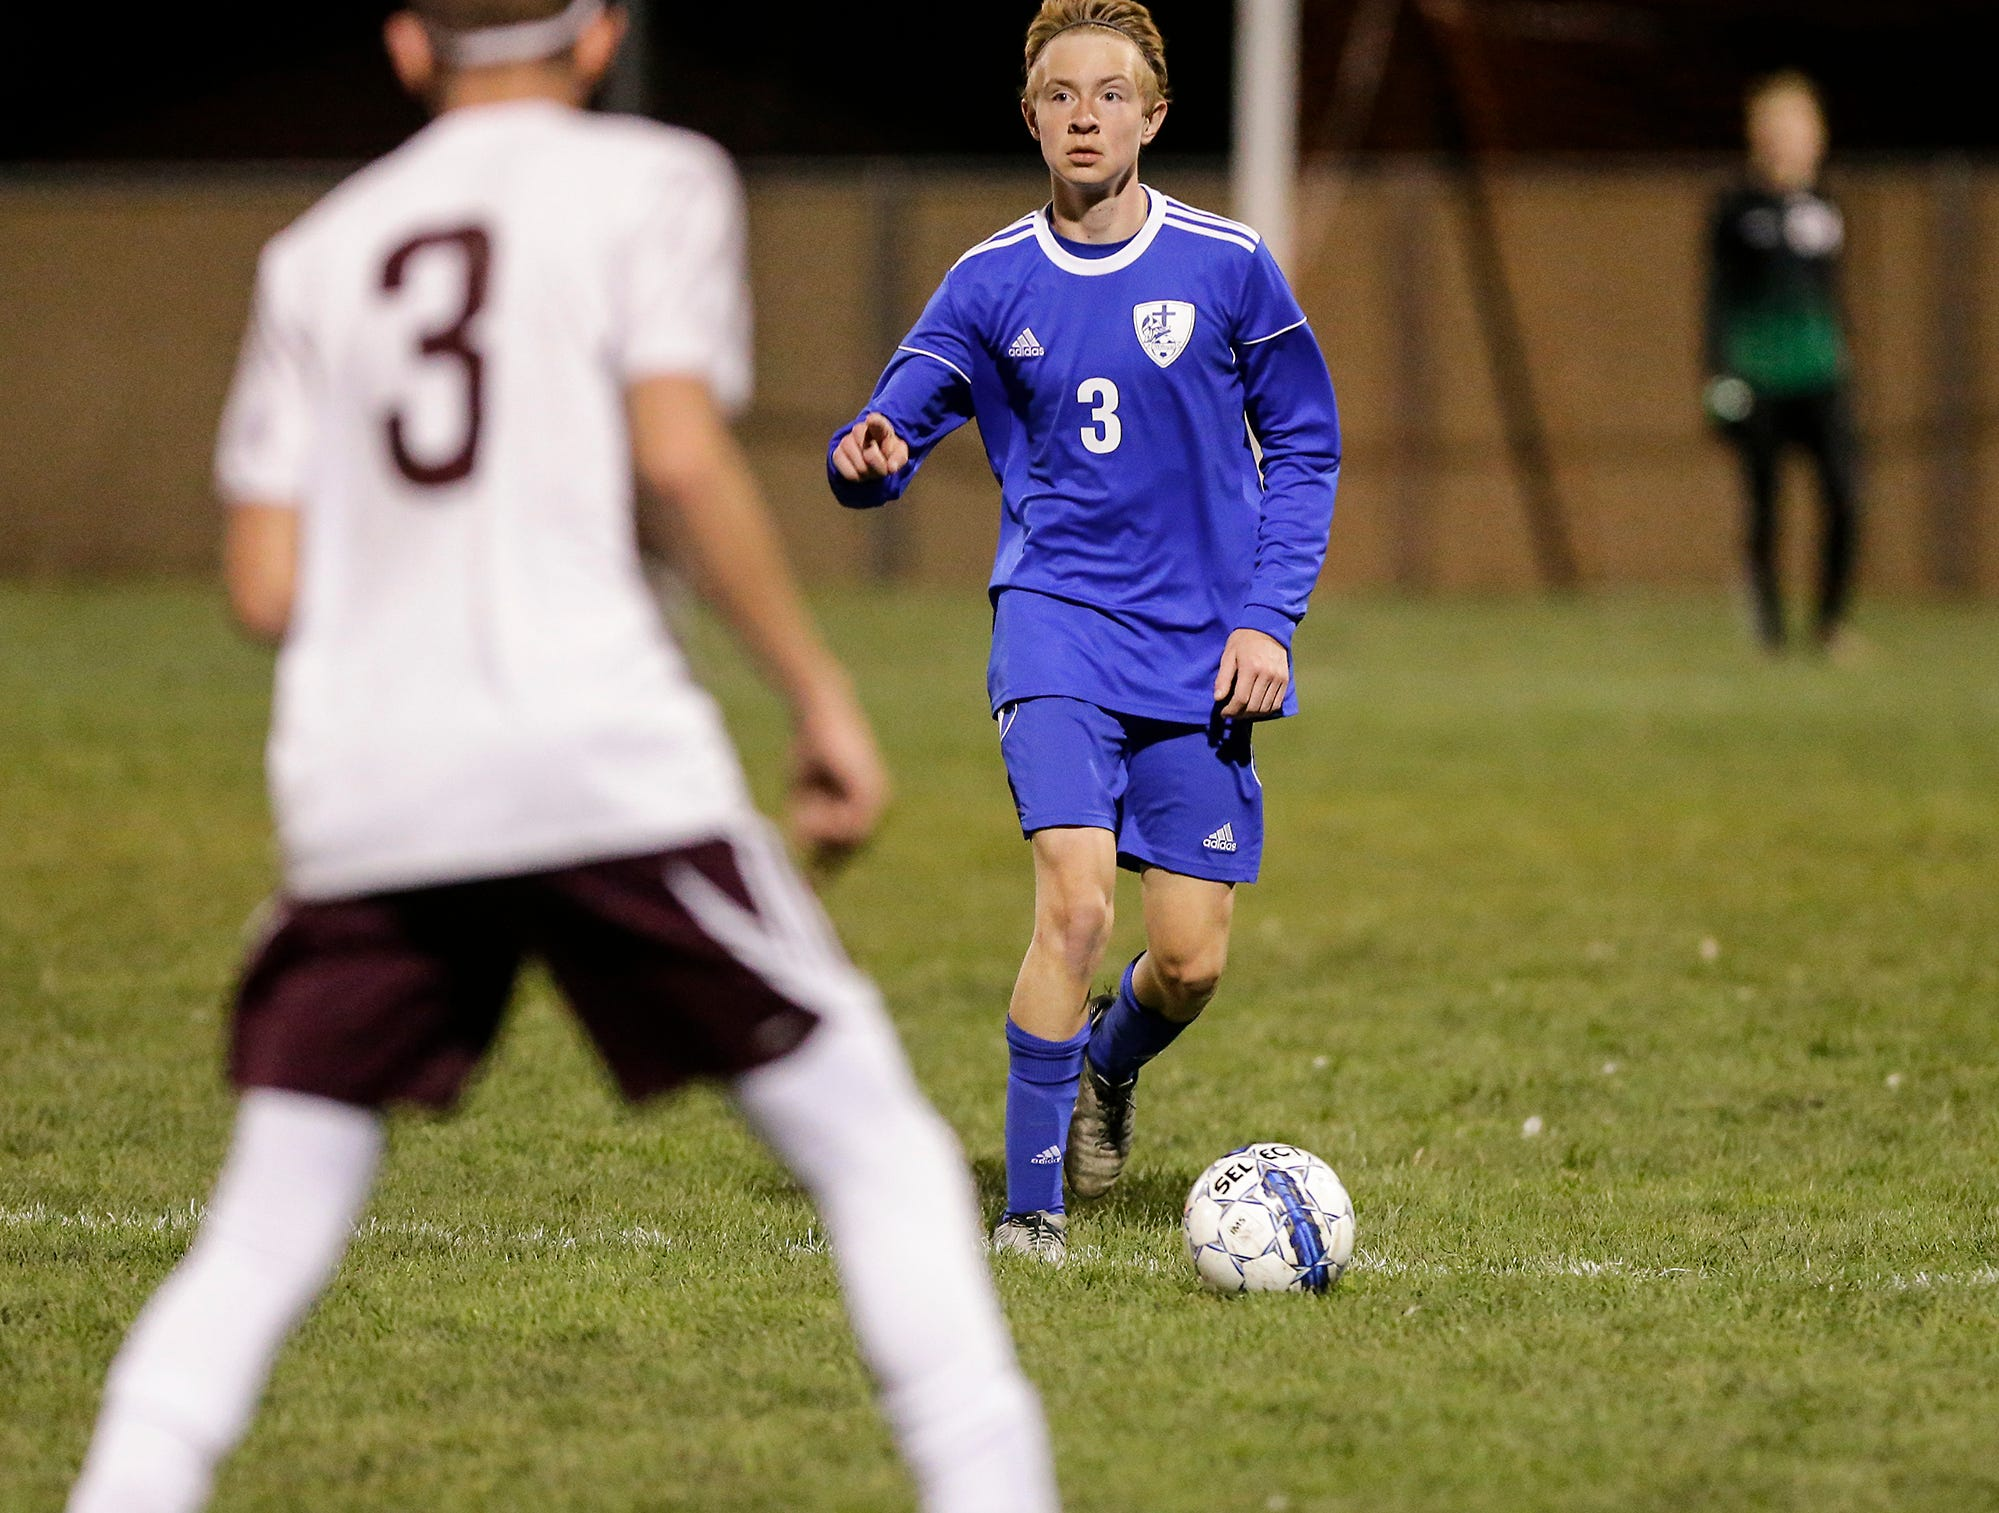 Winnebago Lutheran Academy soccer's Carter Sampson directs his next move against Omro High School during their WIAA regional playoff game Thursday, October 18, 2018 in Fond du Lac, Wisconsin. Doug Raflik/USA TODAY NETWORK-Wisconsin